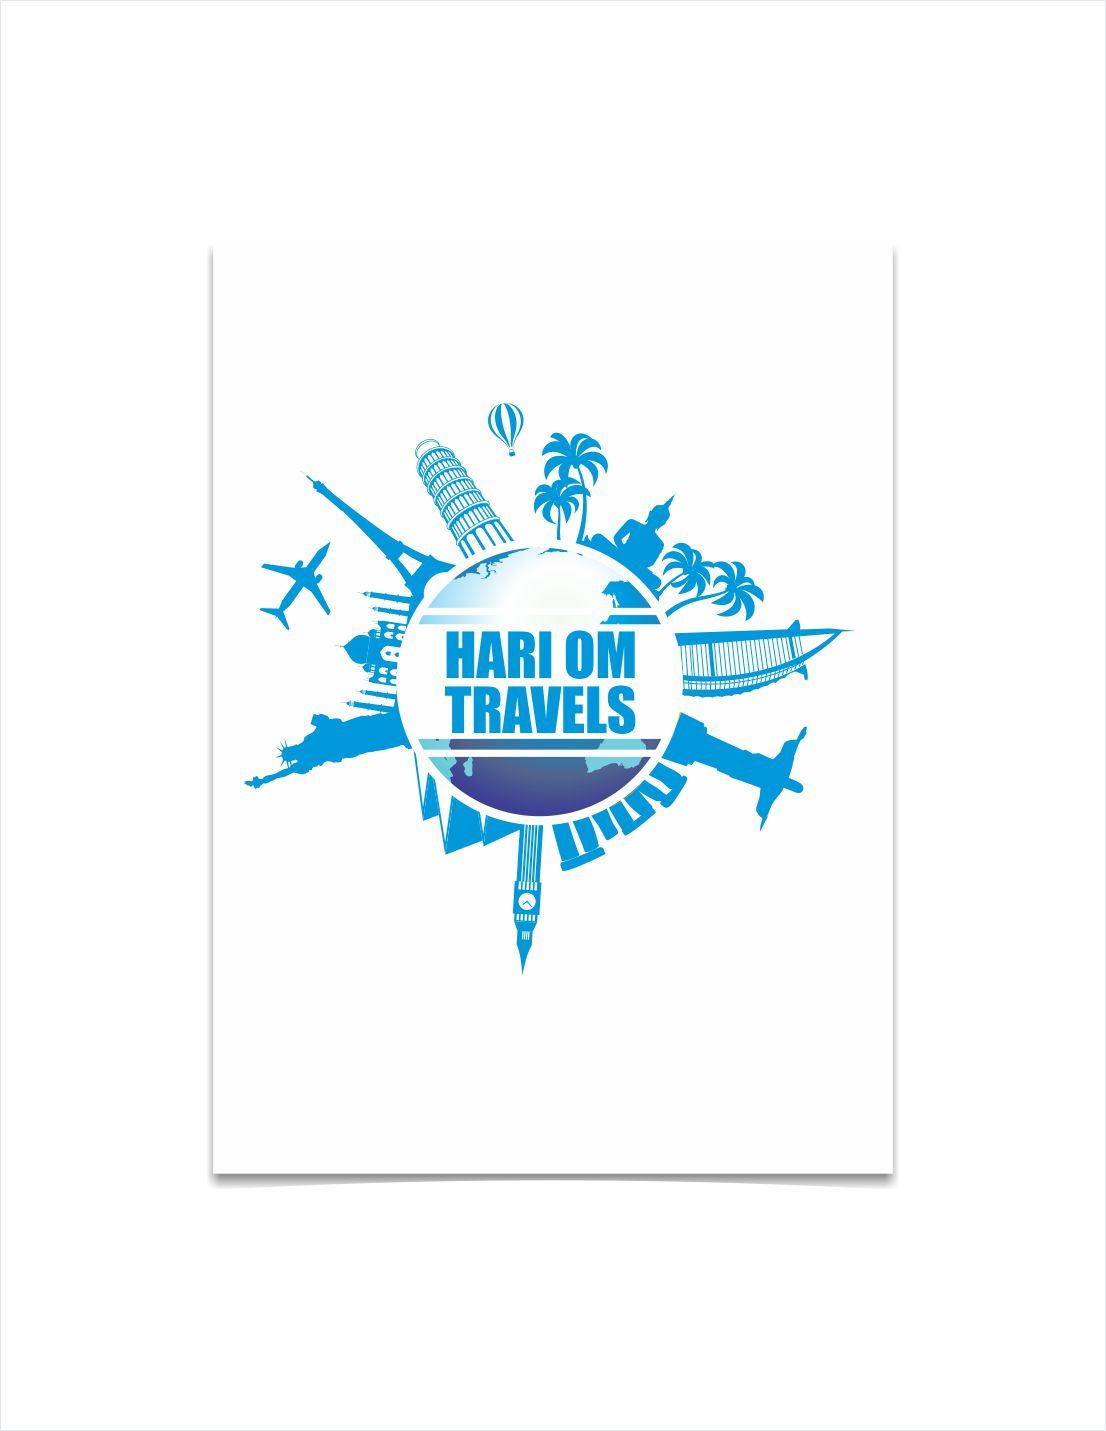 How to travel for free | Free, Logos and Travel logo |Logos Graphic Design Agency